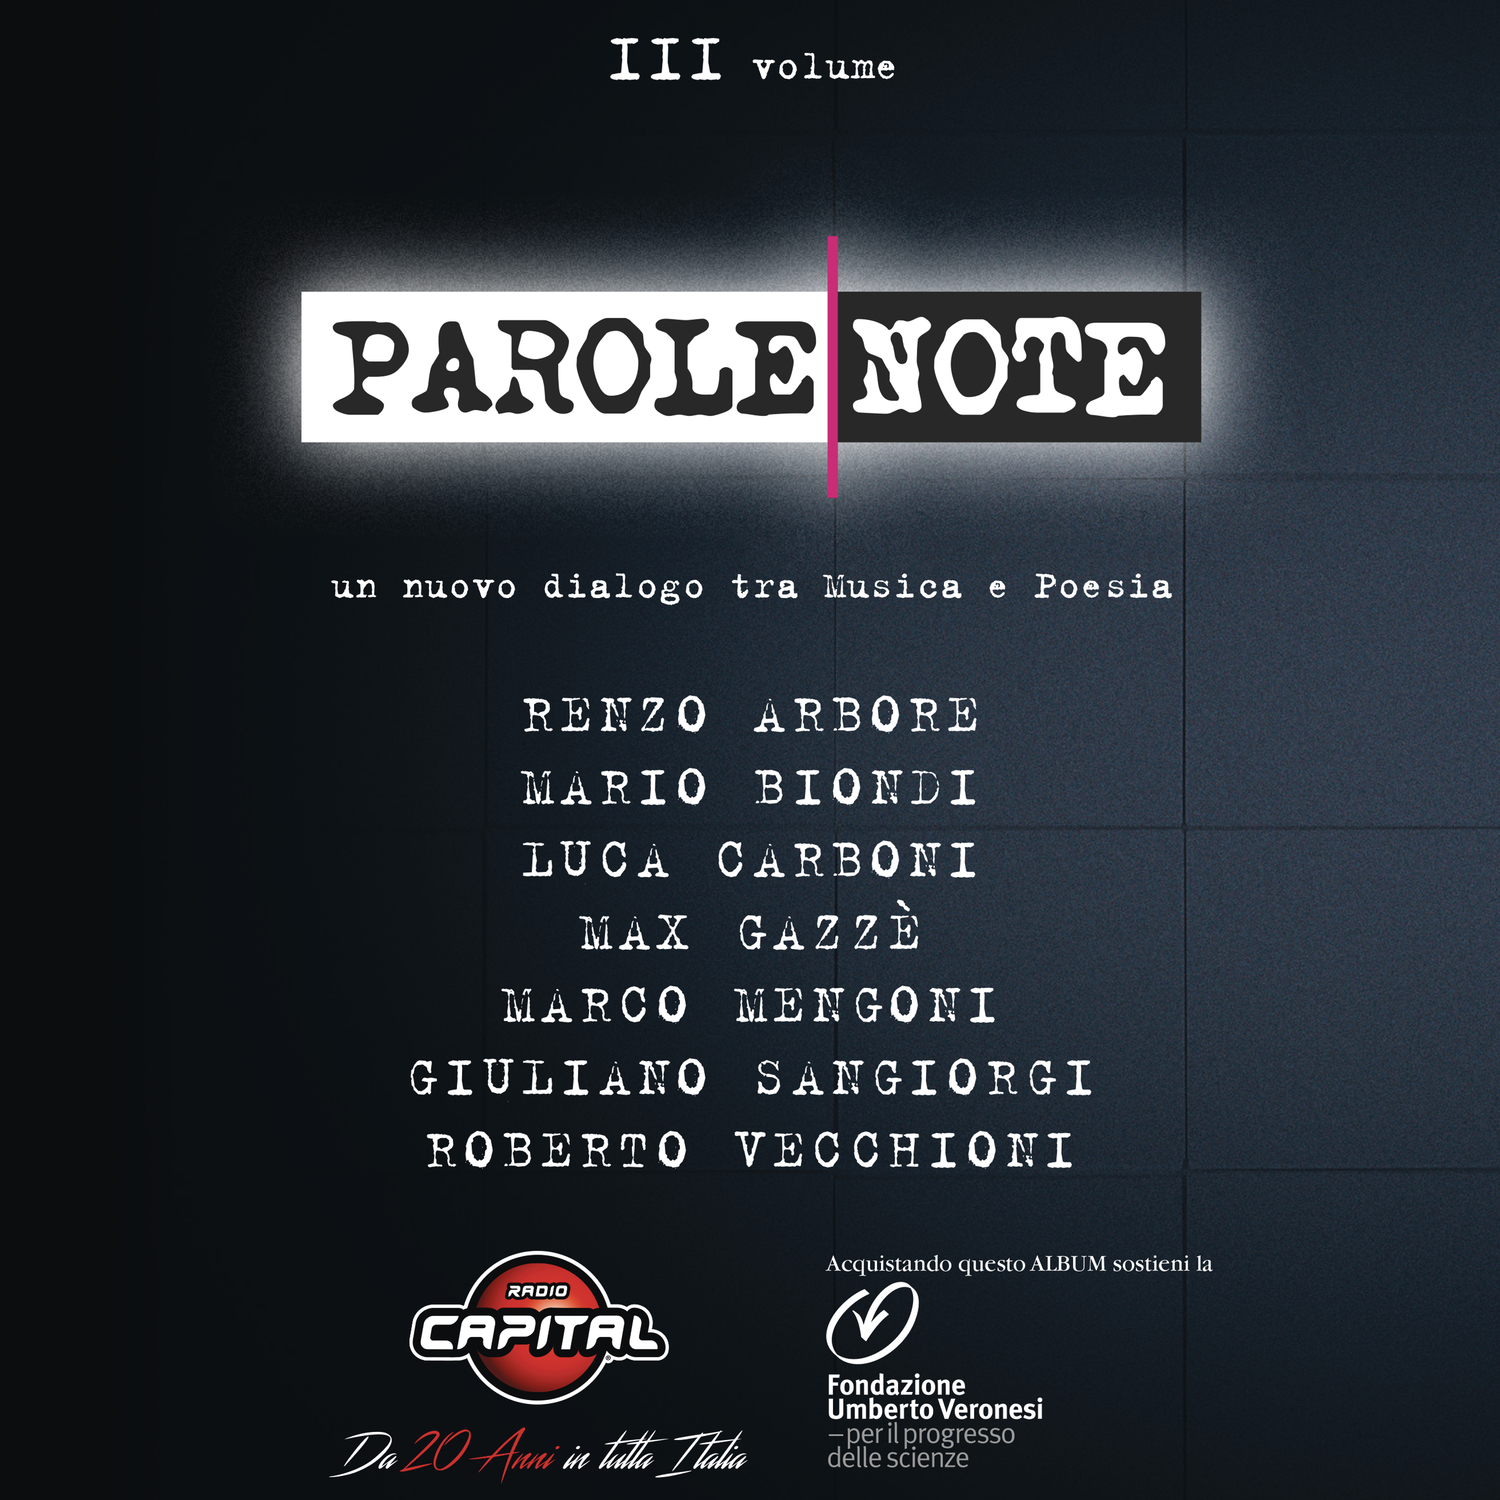 Parole note, Vol. 3